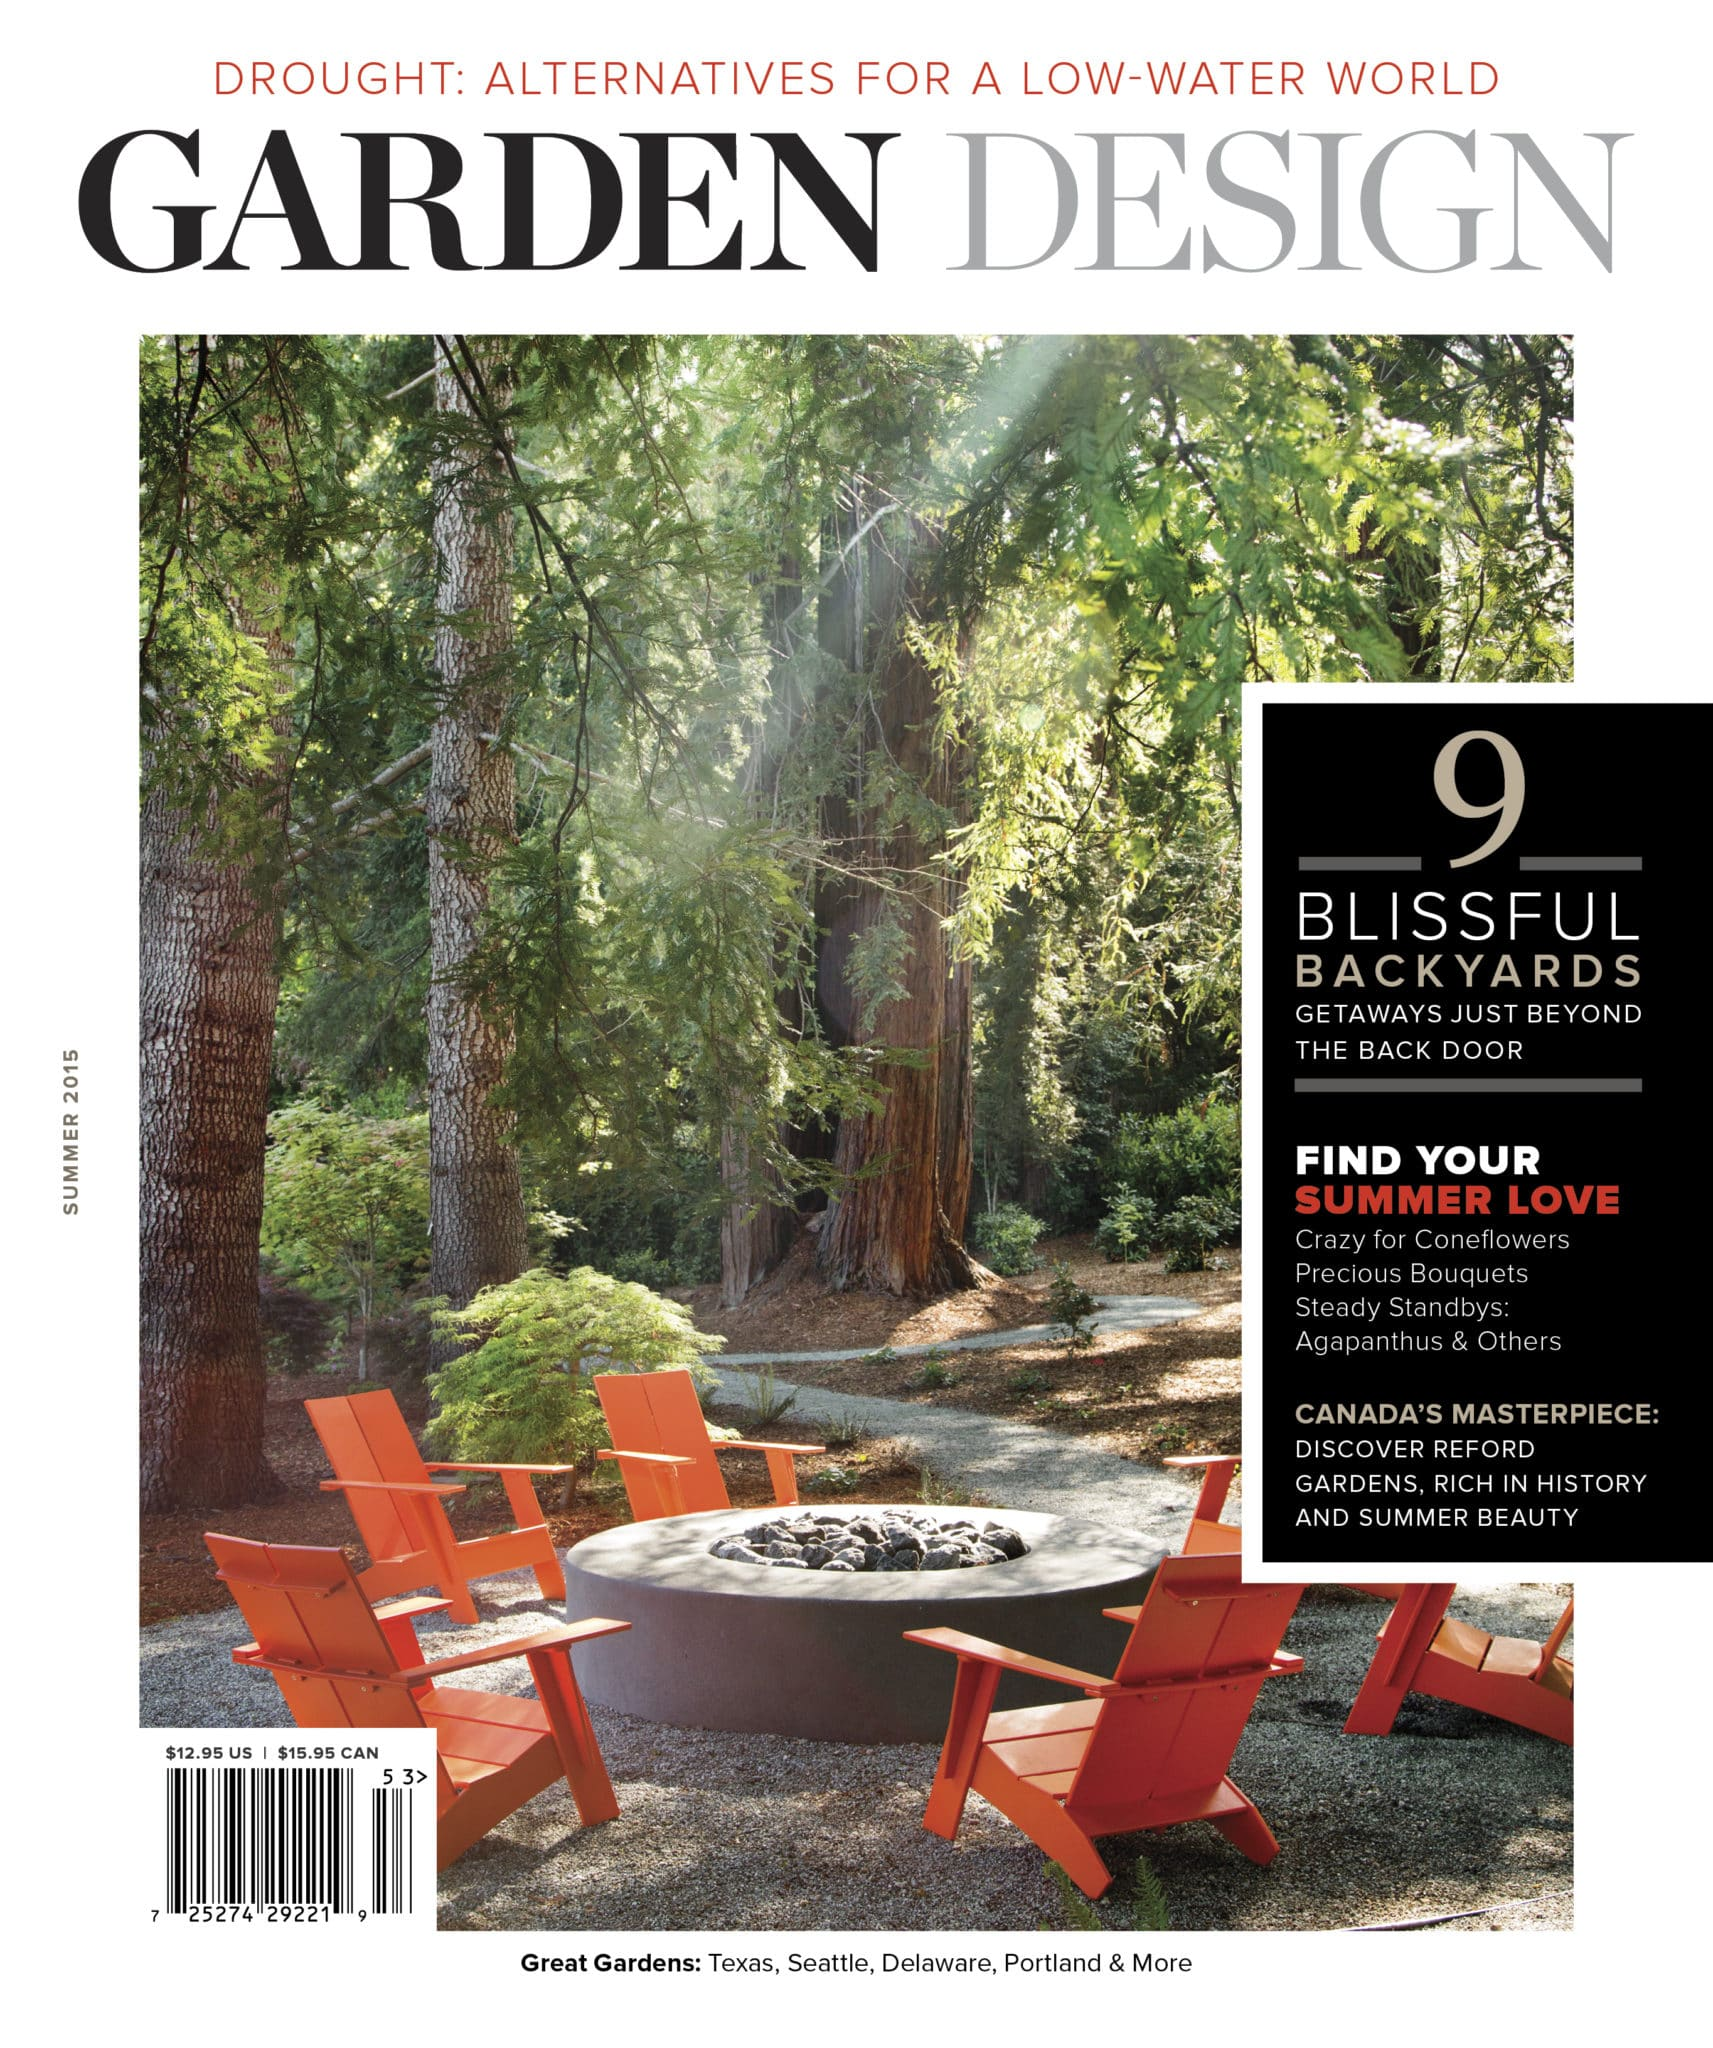 Summer 2015 garden design magazine review eye of the day for Garten design magazin